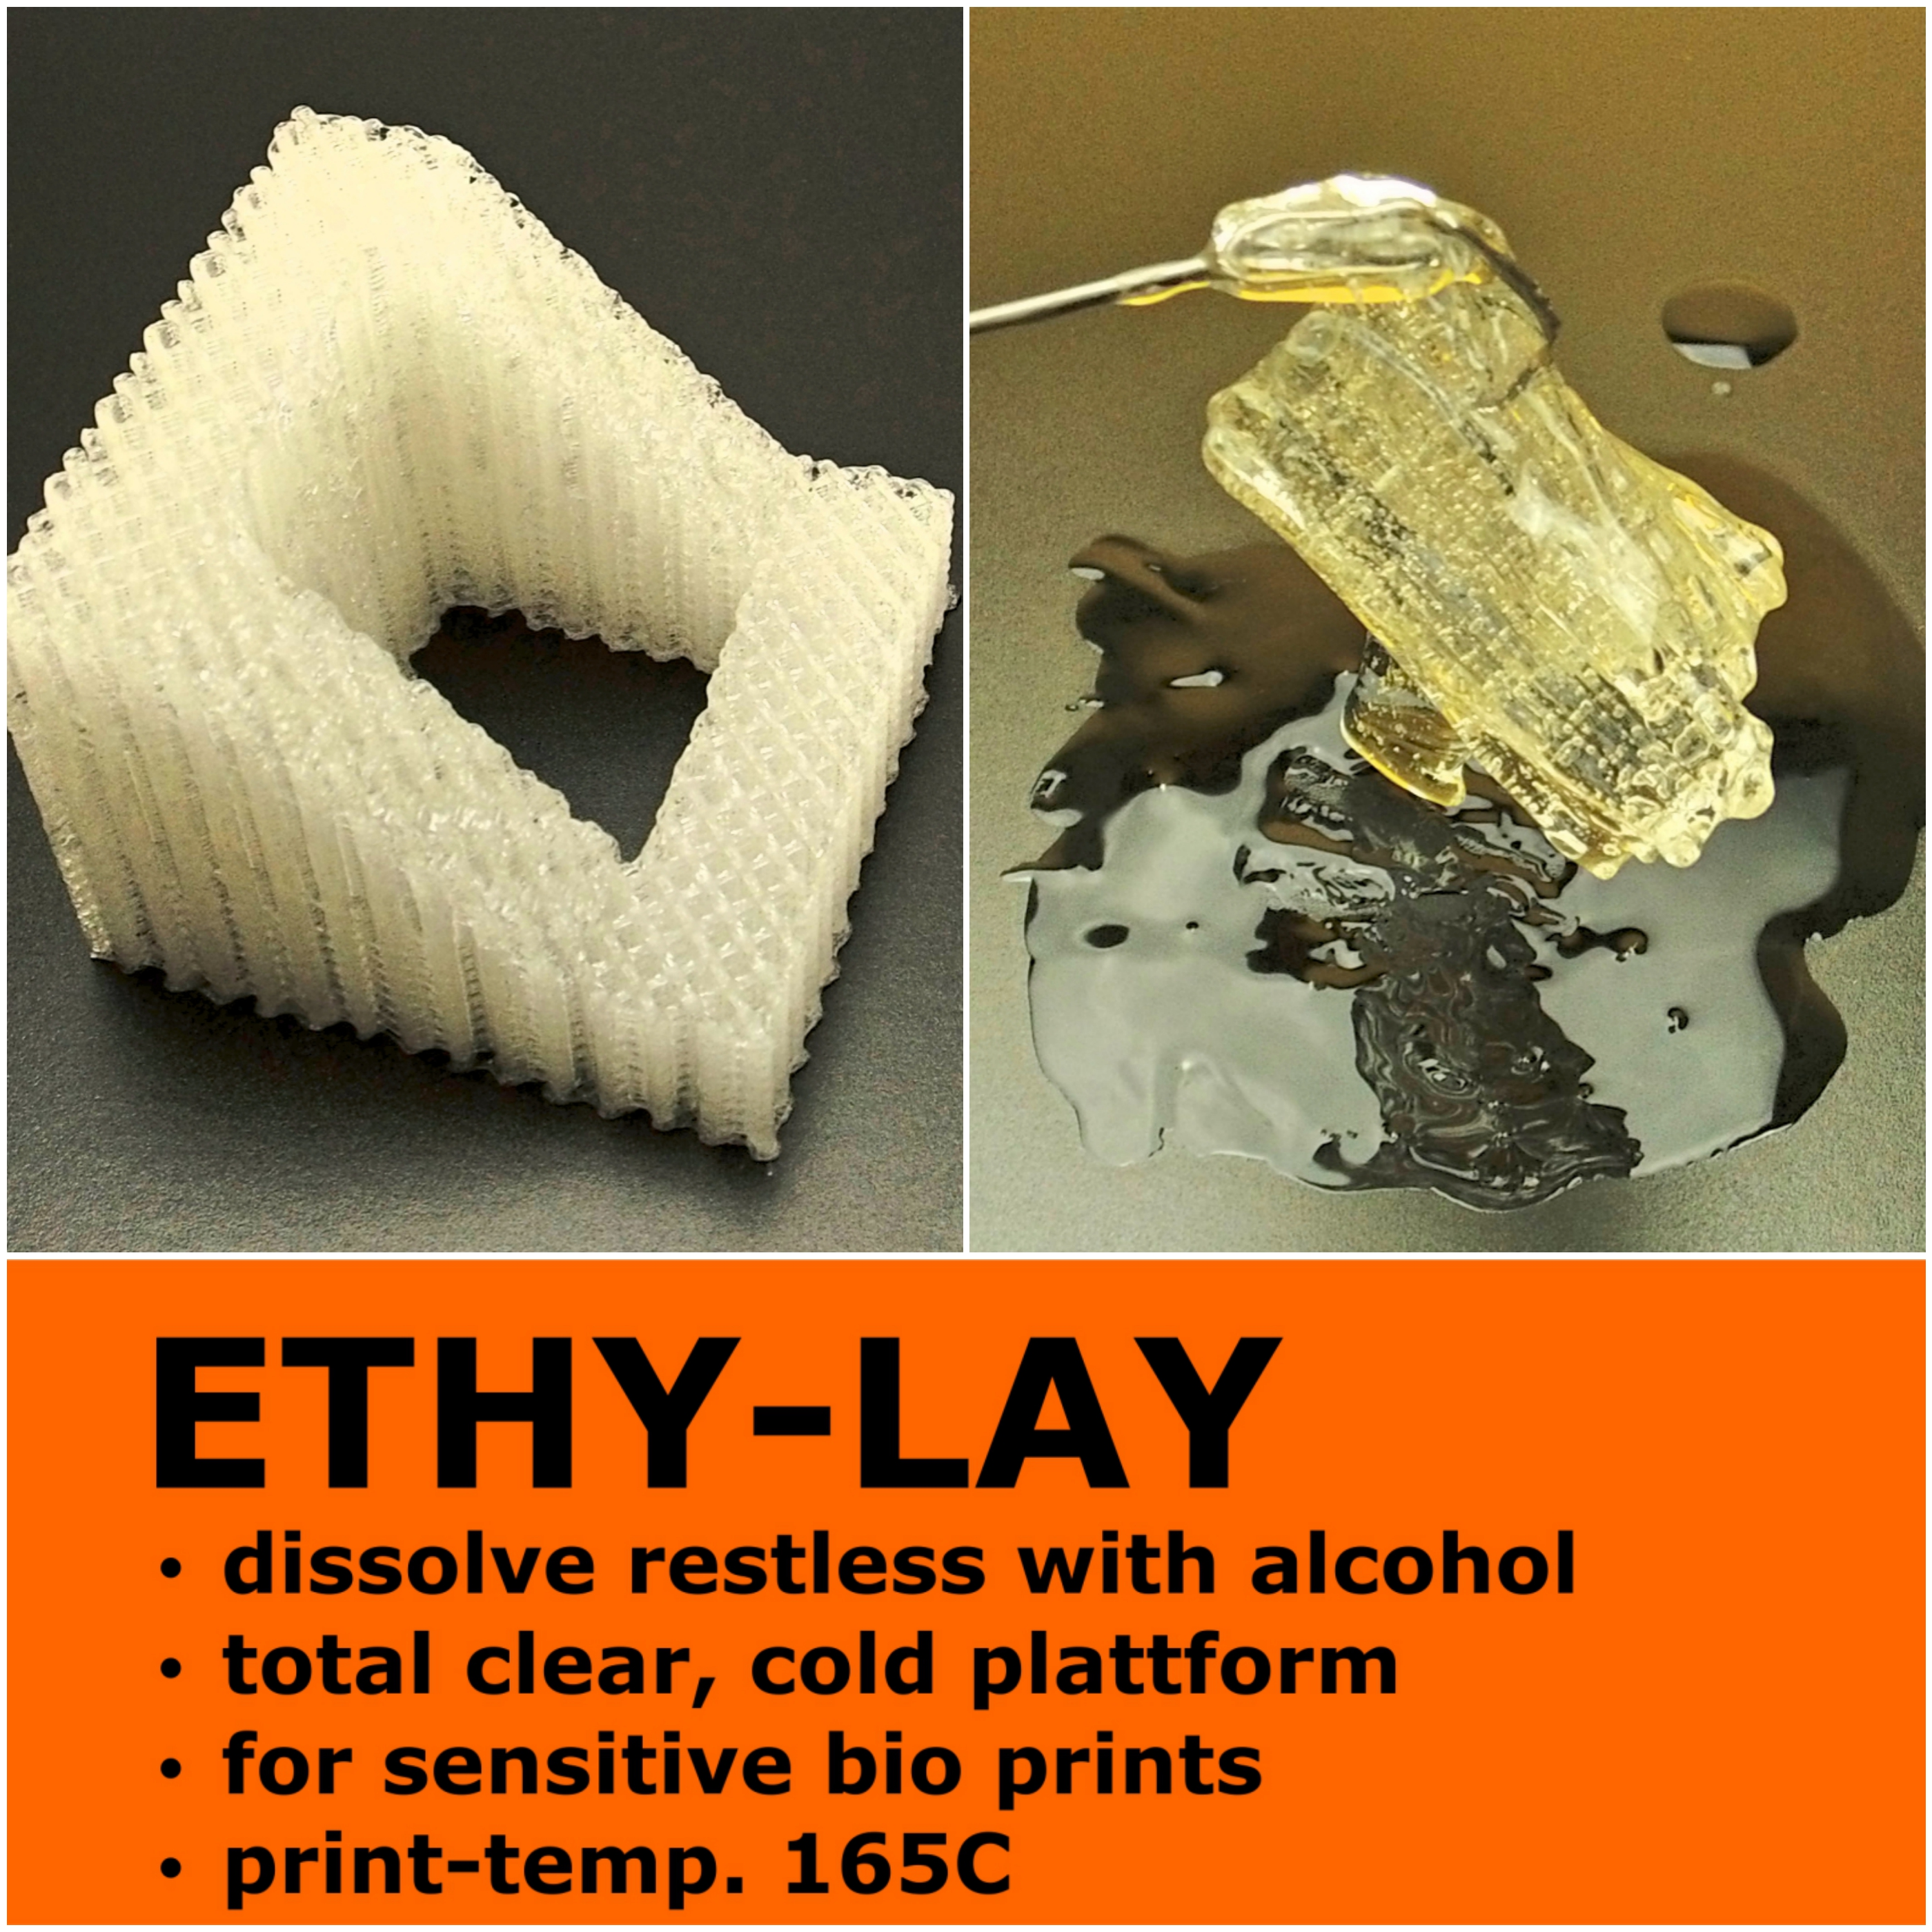 ethylay_Filament_support_structures_kai_parthy